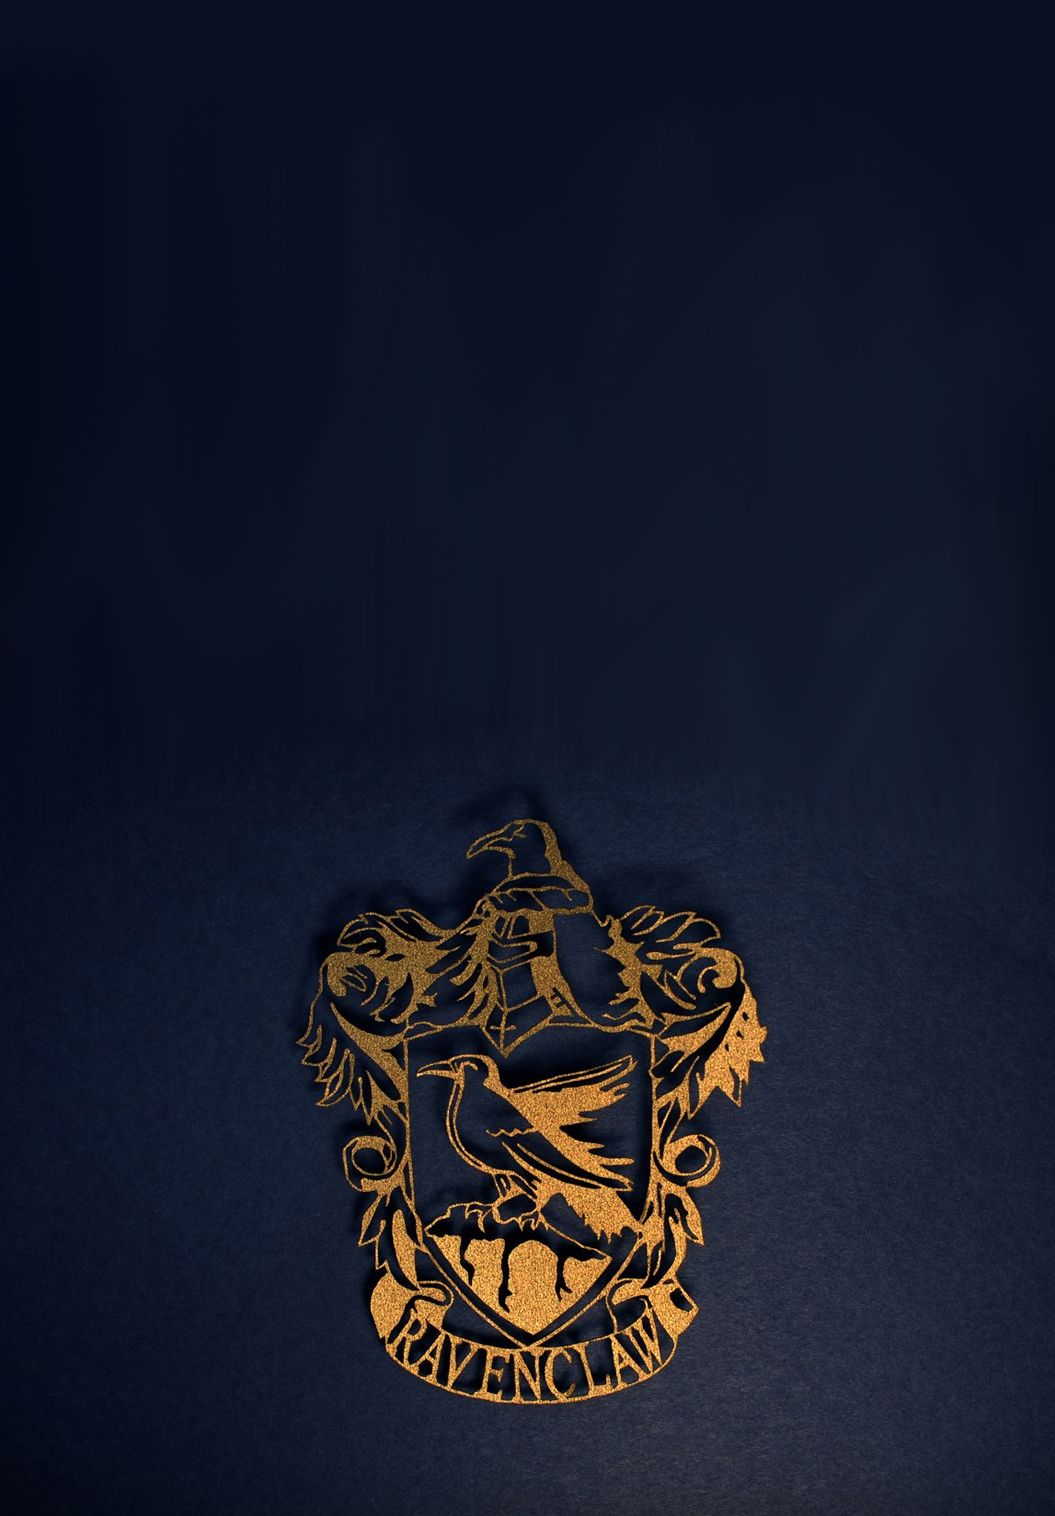 Ravenclaw Flag Good Printing Quality But Can Be Dark Ravenclaw Aesthetic Ravenclaw Hogwarts Houses